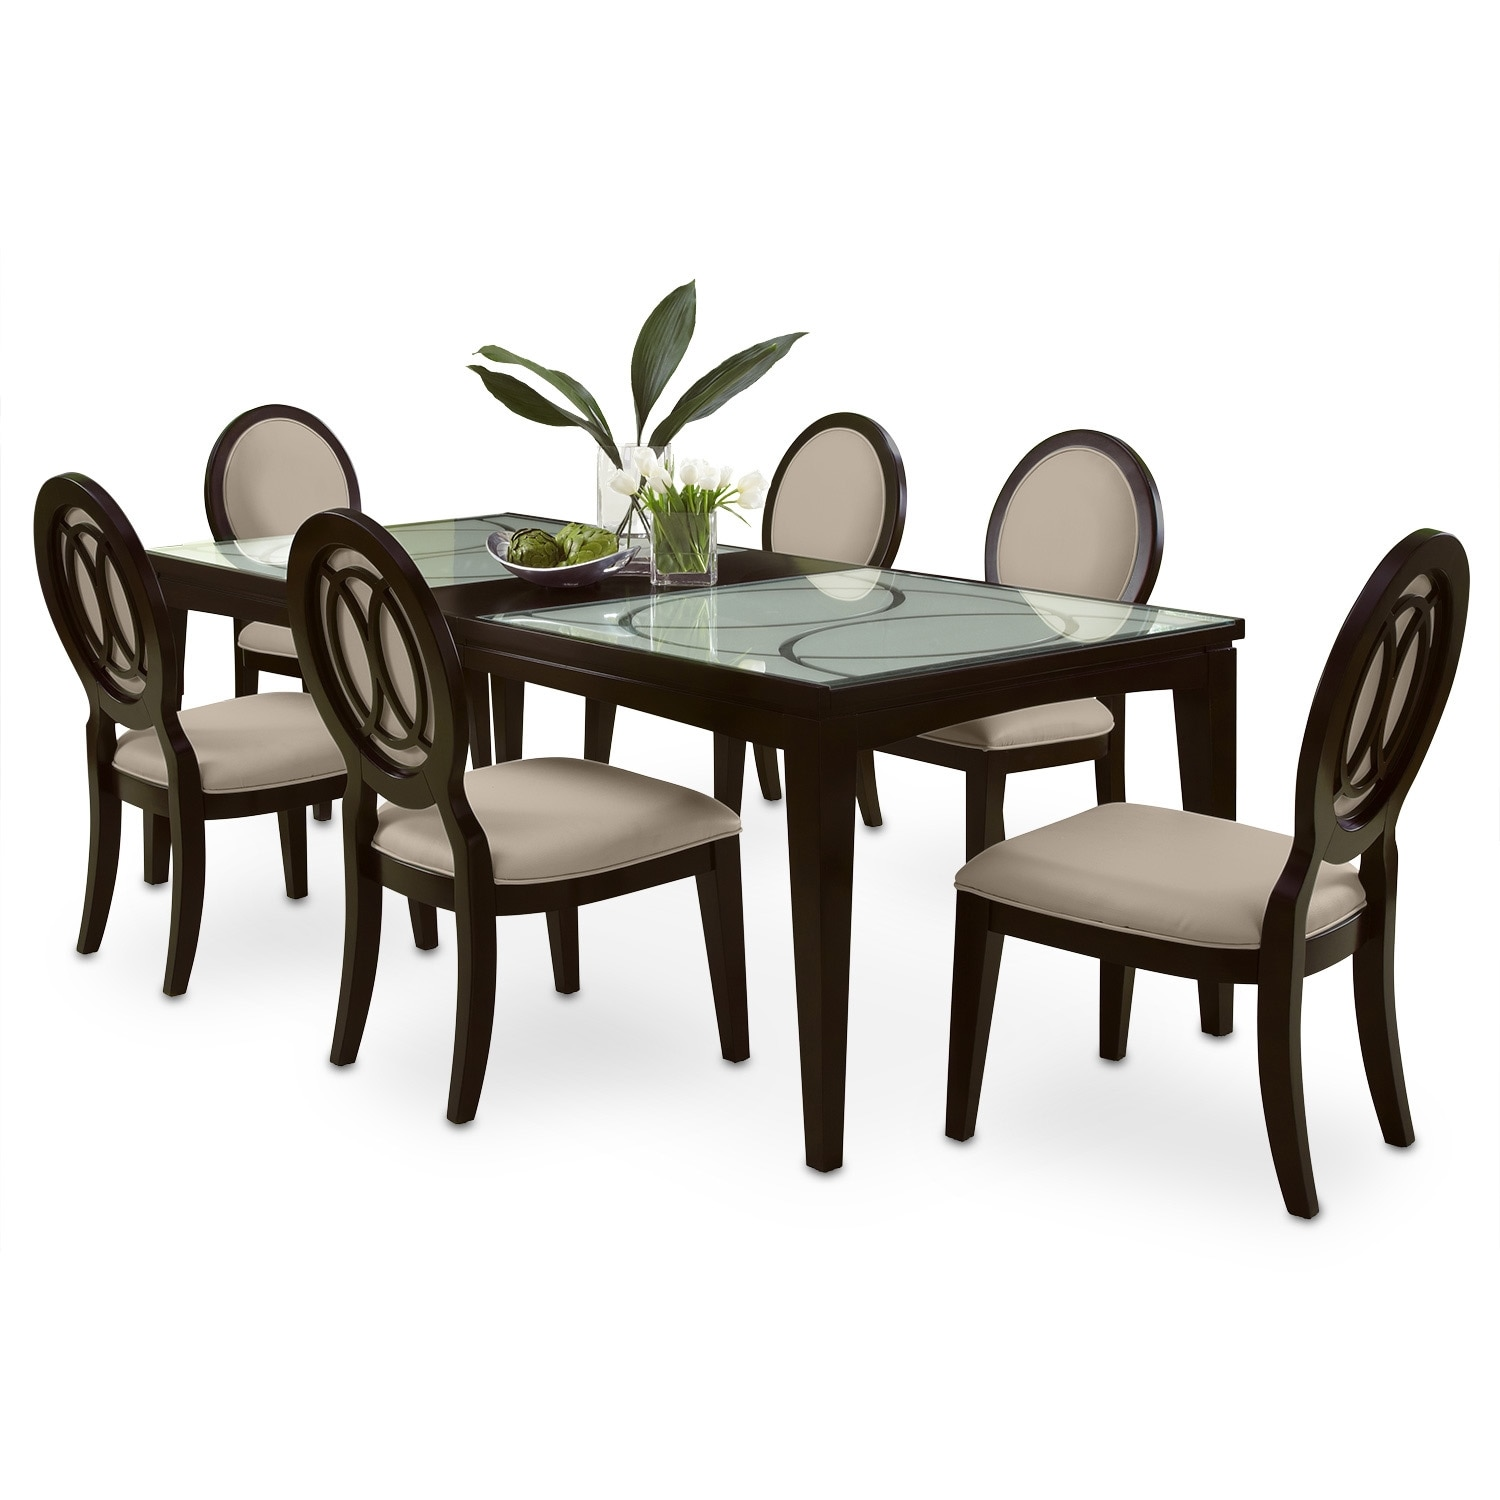 Cosmo table and 6 chairs merlot american signature for Signature furniture